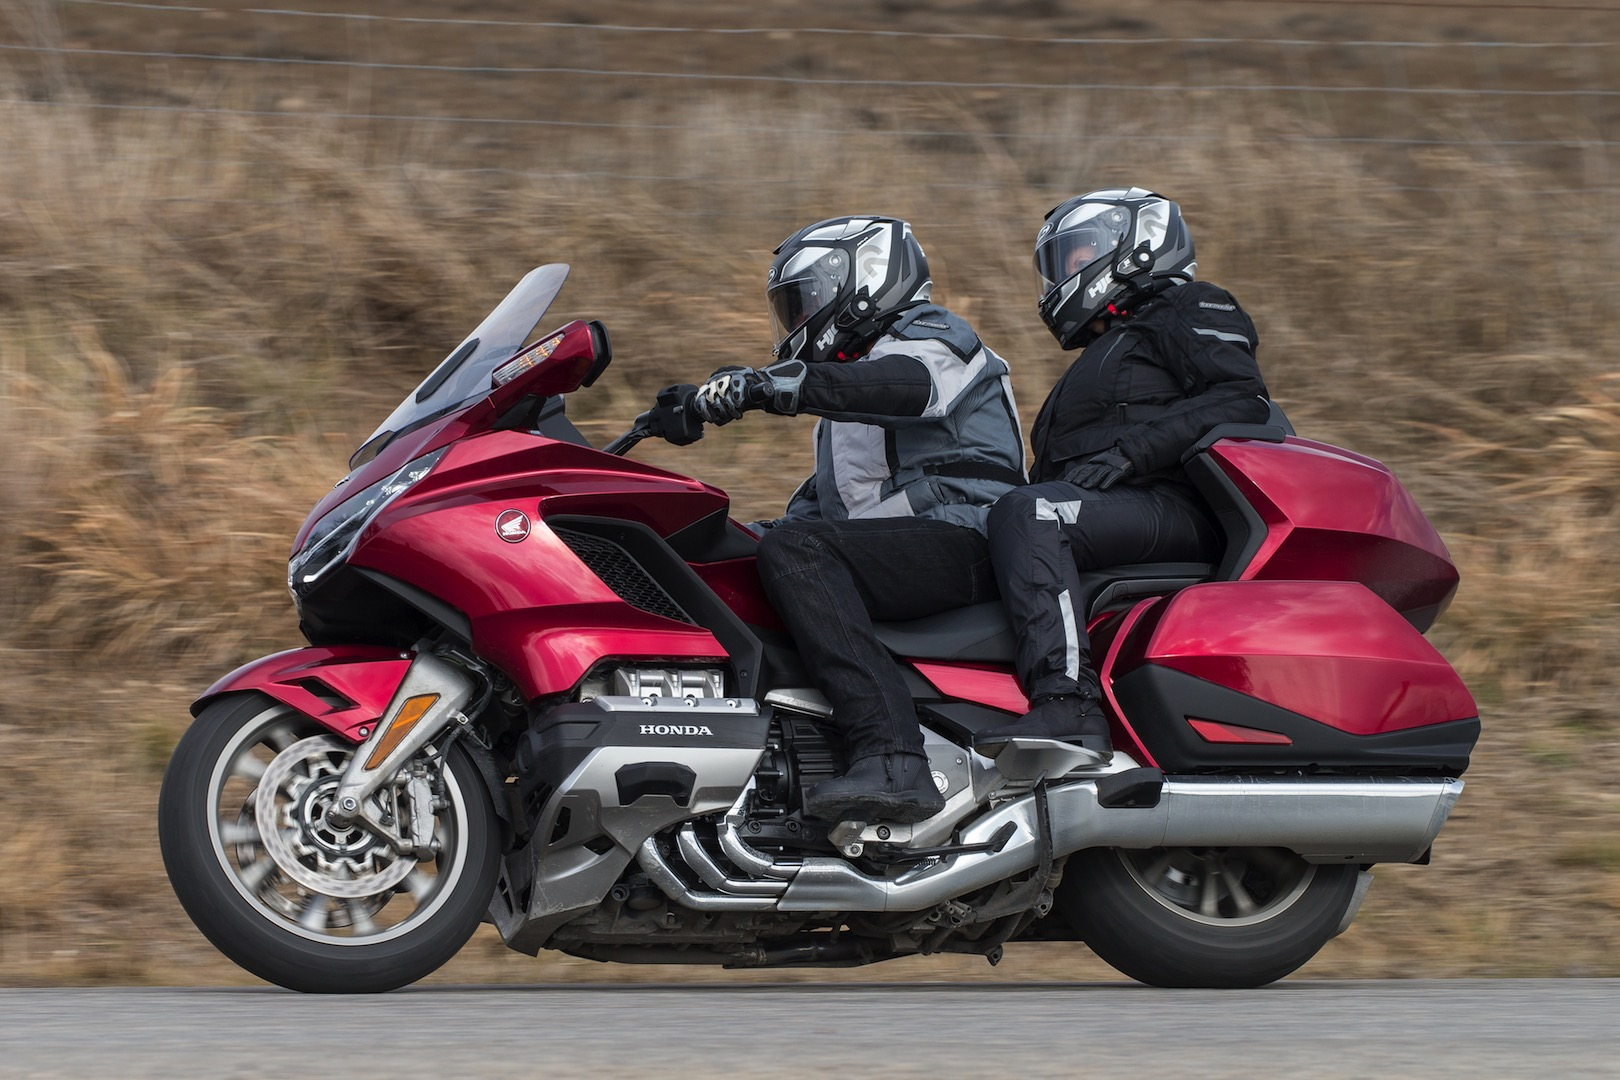 2018 Honda Gold Wing Tour DCT Review | 34 Fast Facts